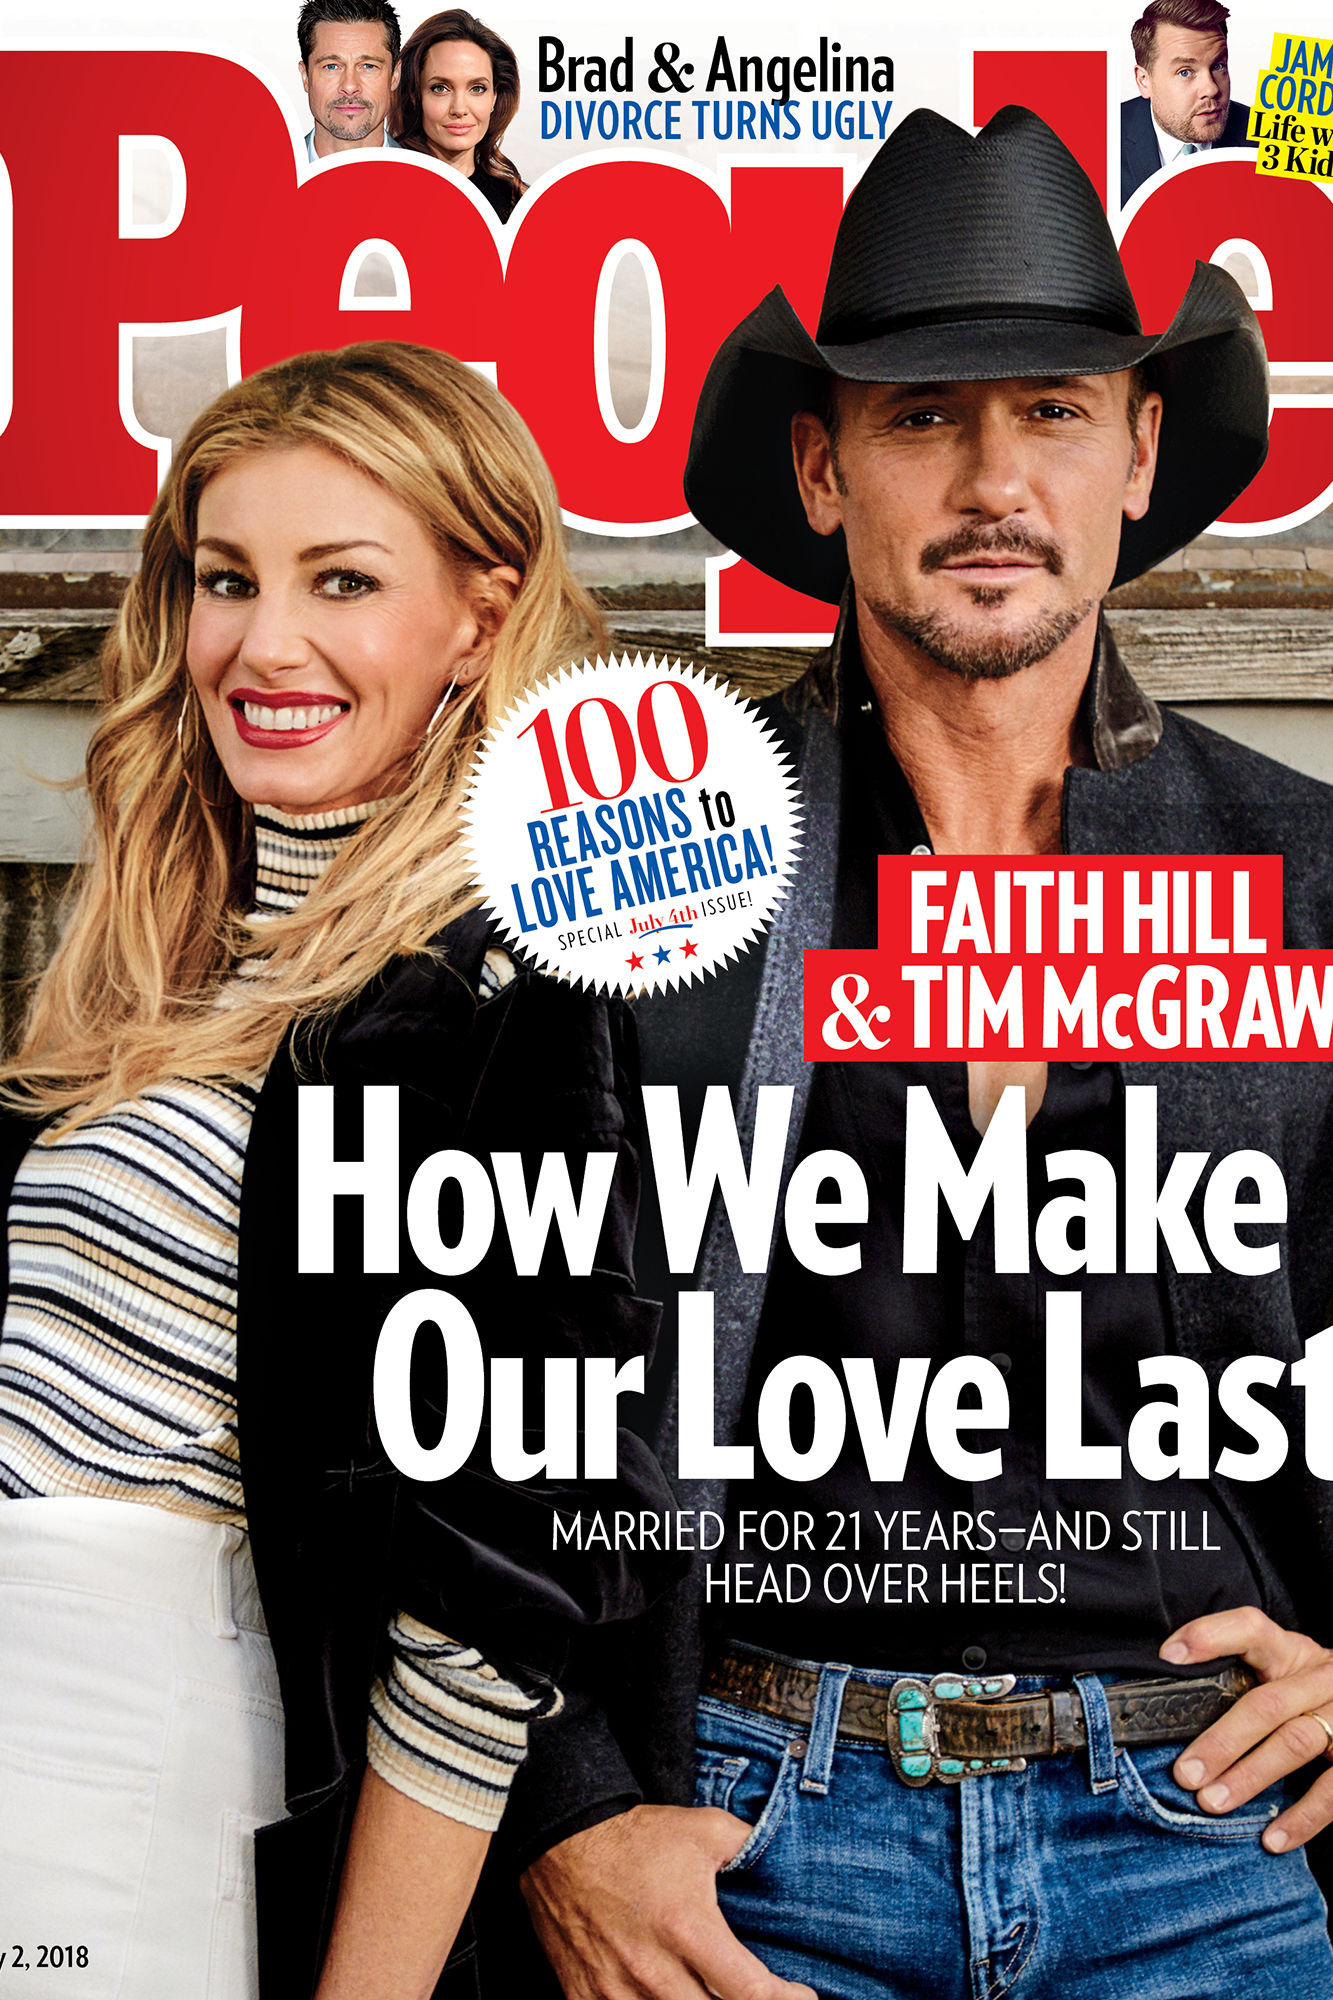 Still in Love After 21 Years! Tim McGraw & Faith Hill Say Date Nights, Prayer and Alone Time Keep Their Marriage Strong